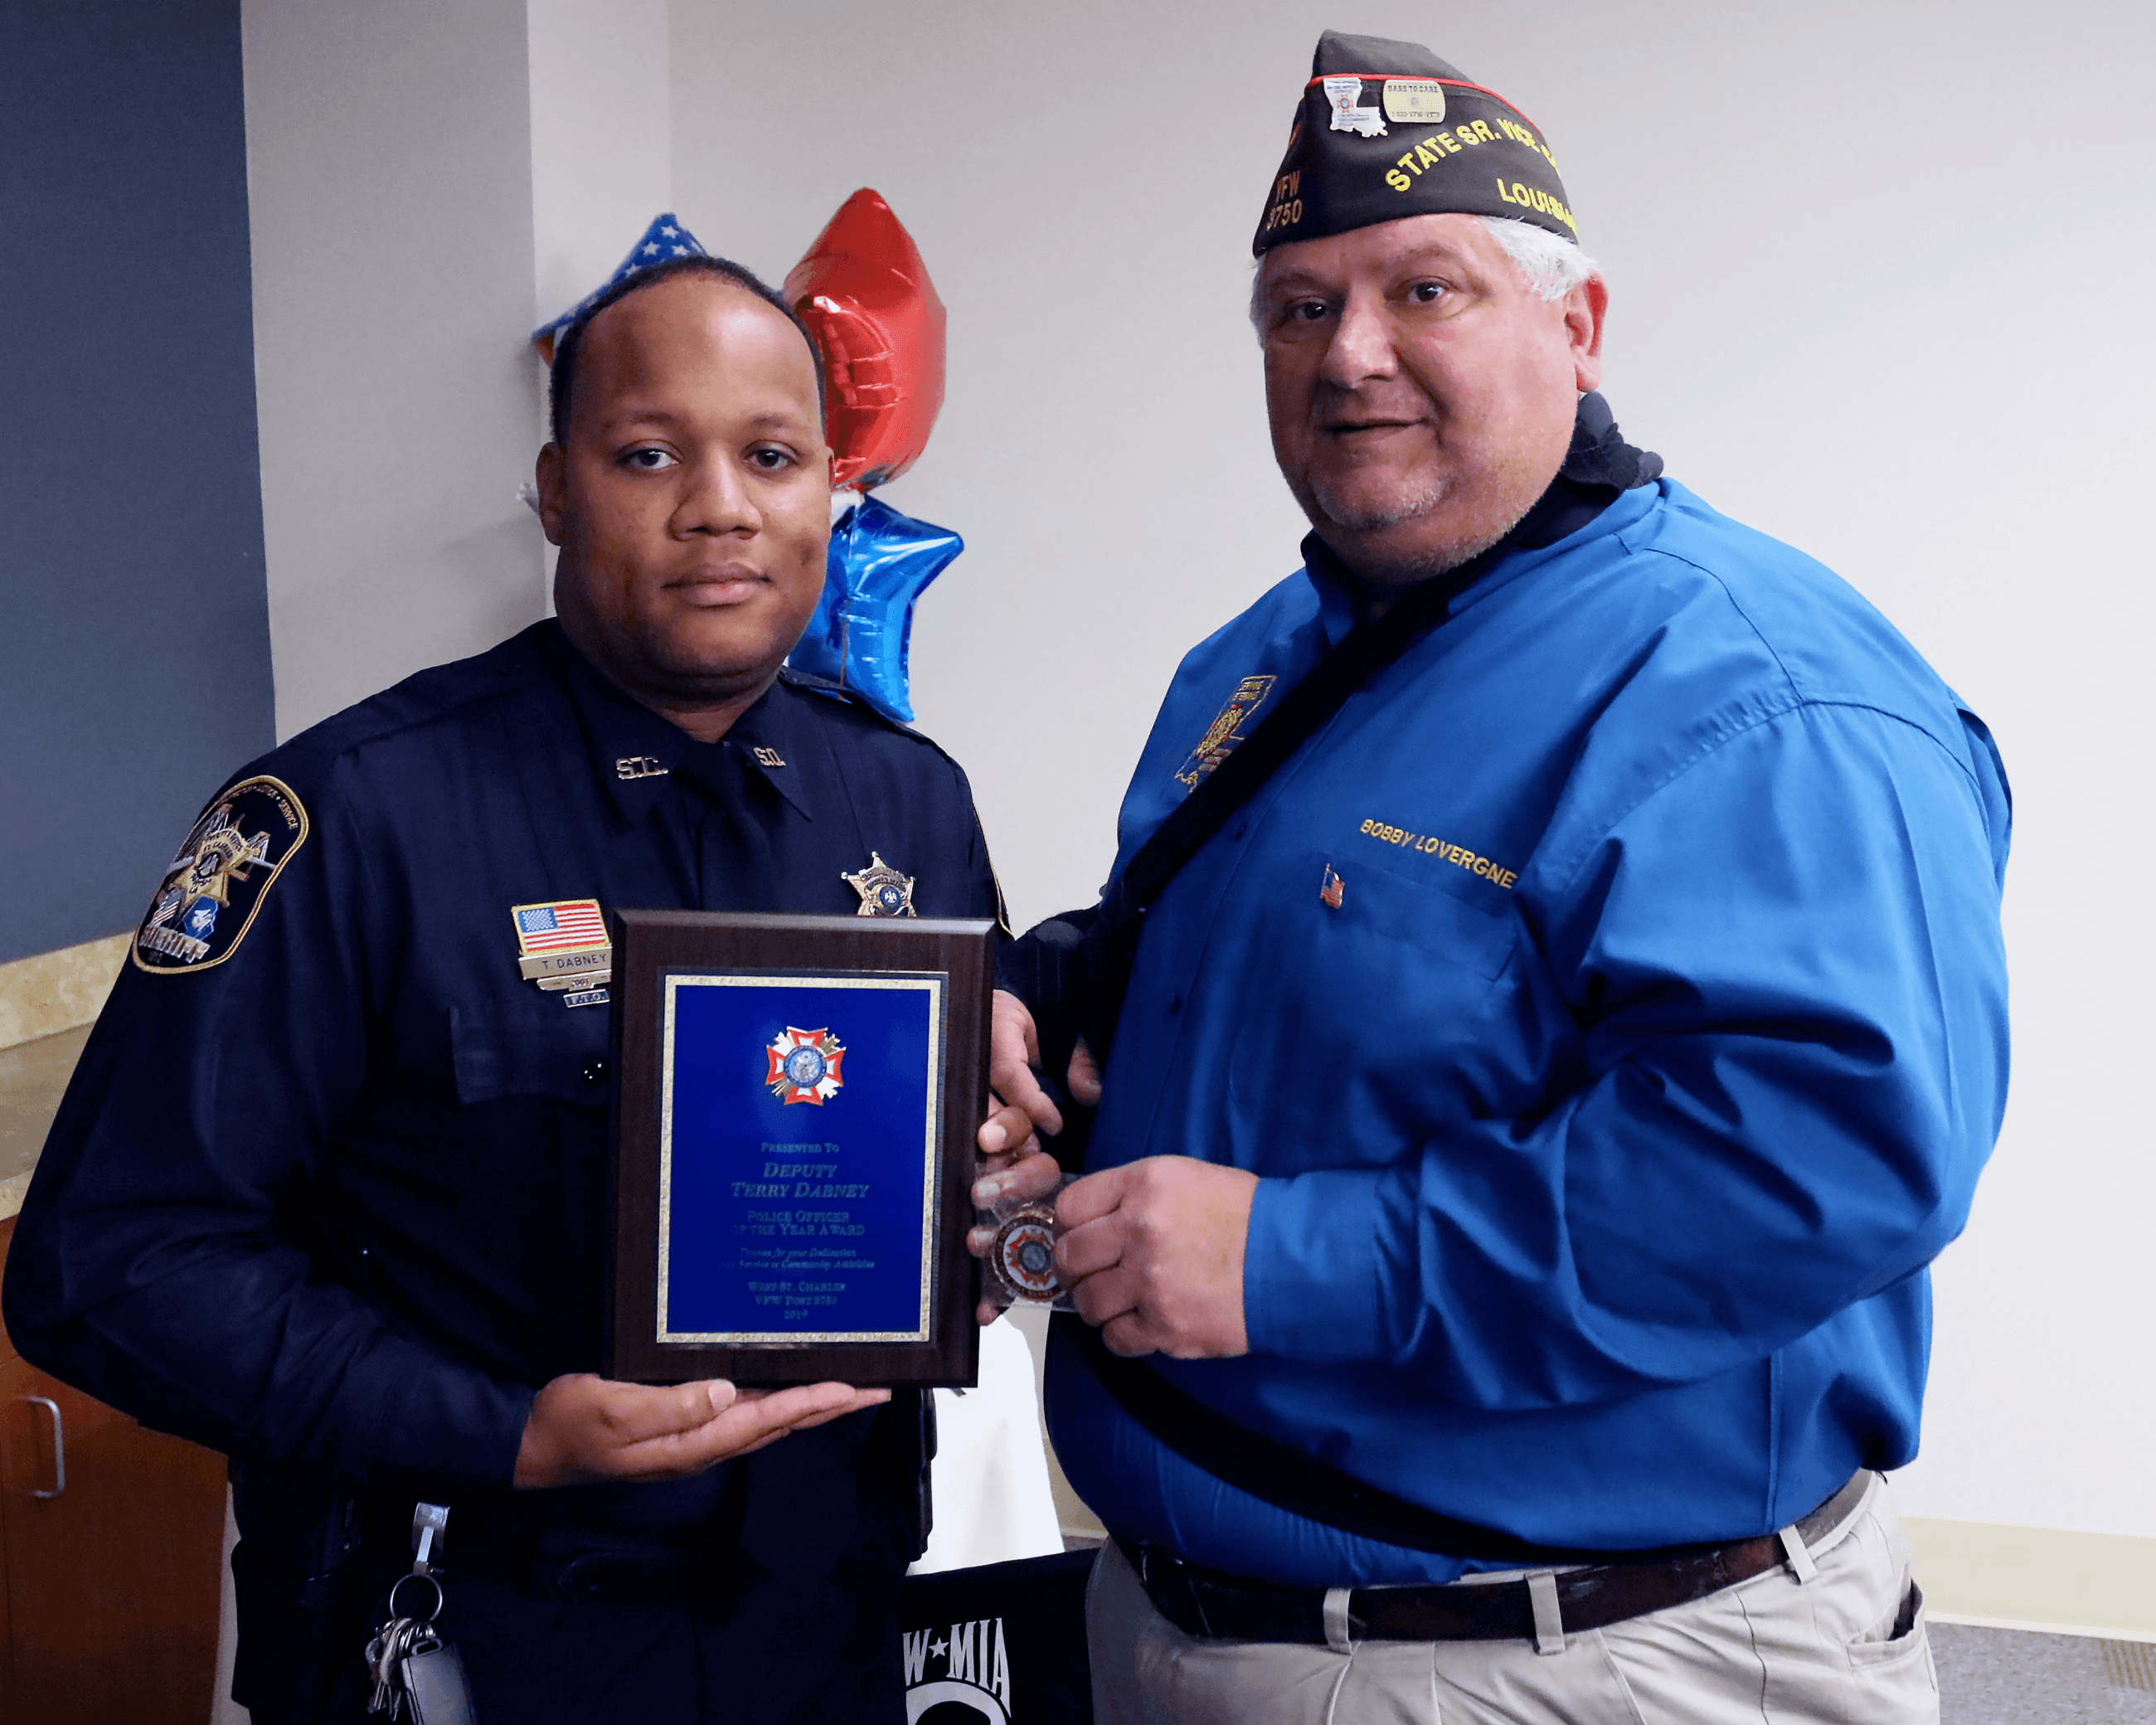 Terry Dabney -Deputy of the Year